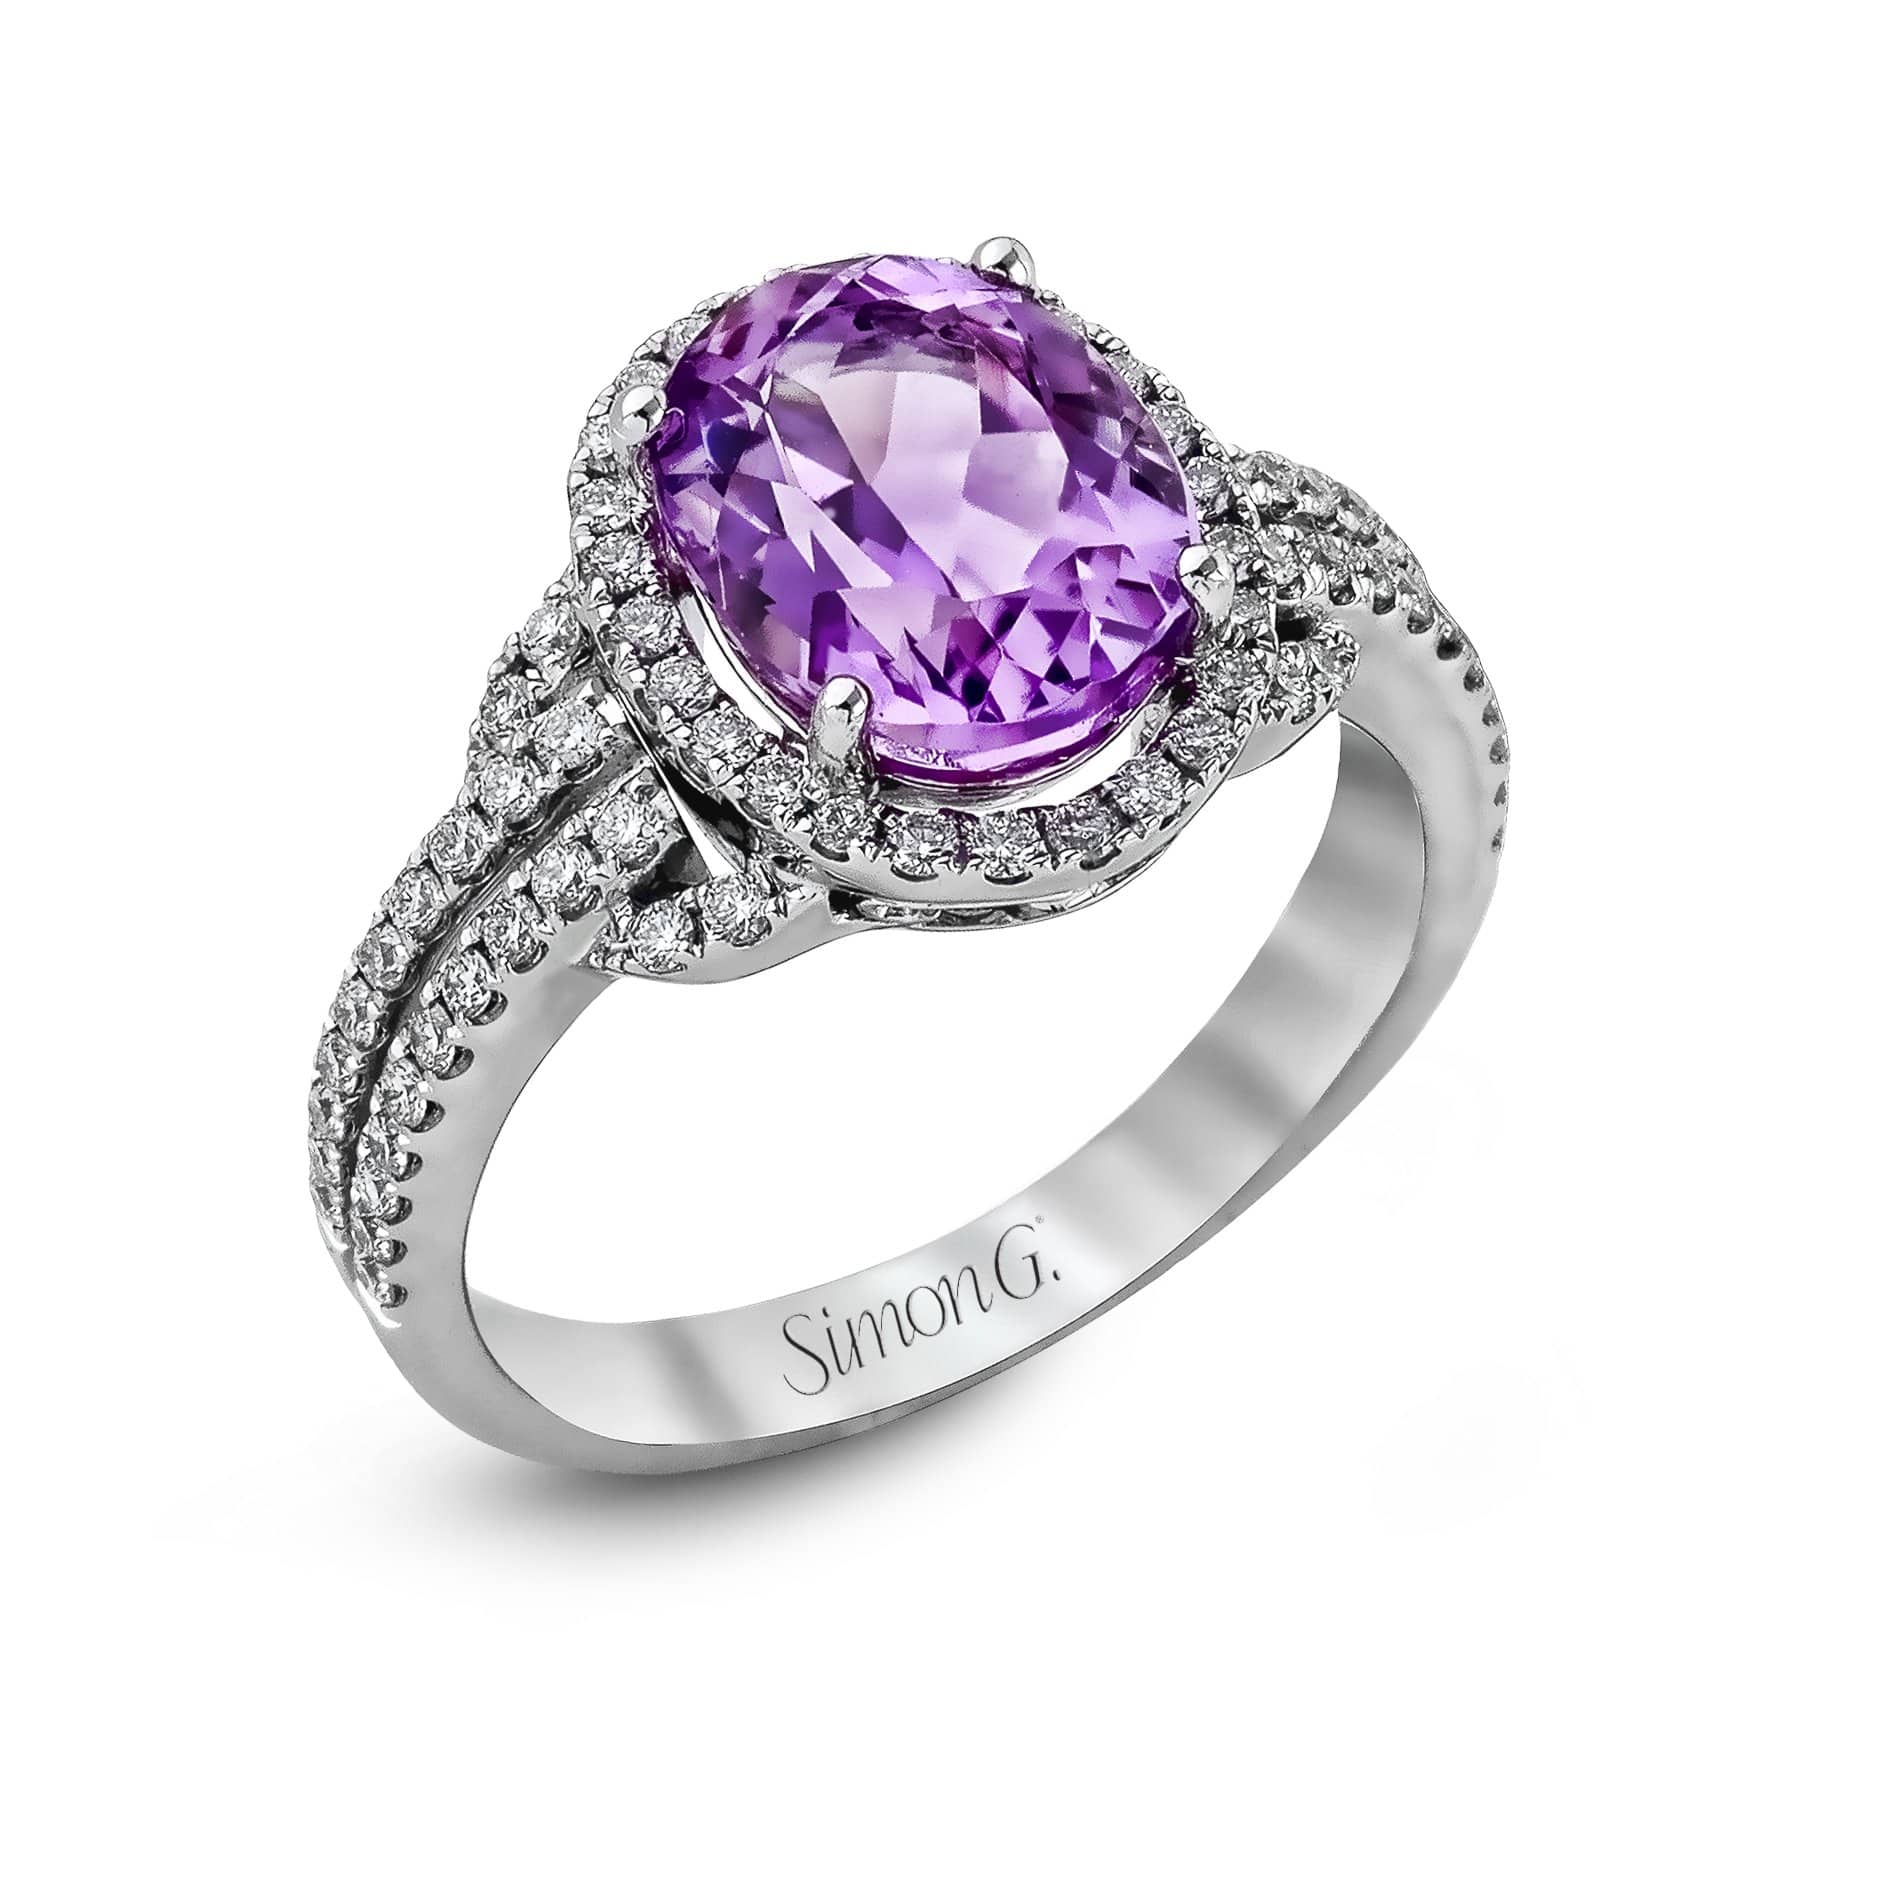 18K White Gold Kunzite Ring - TR288-W